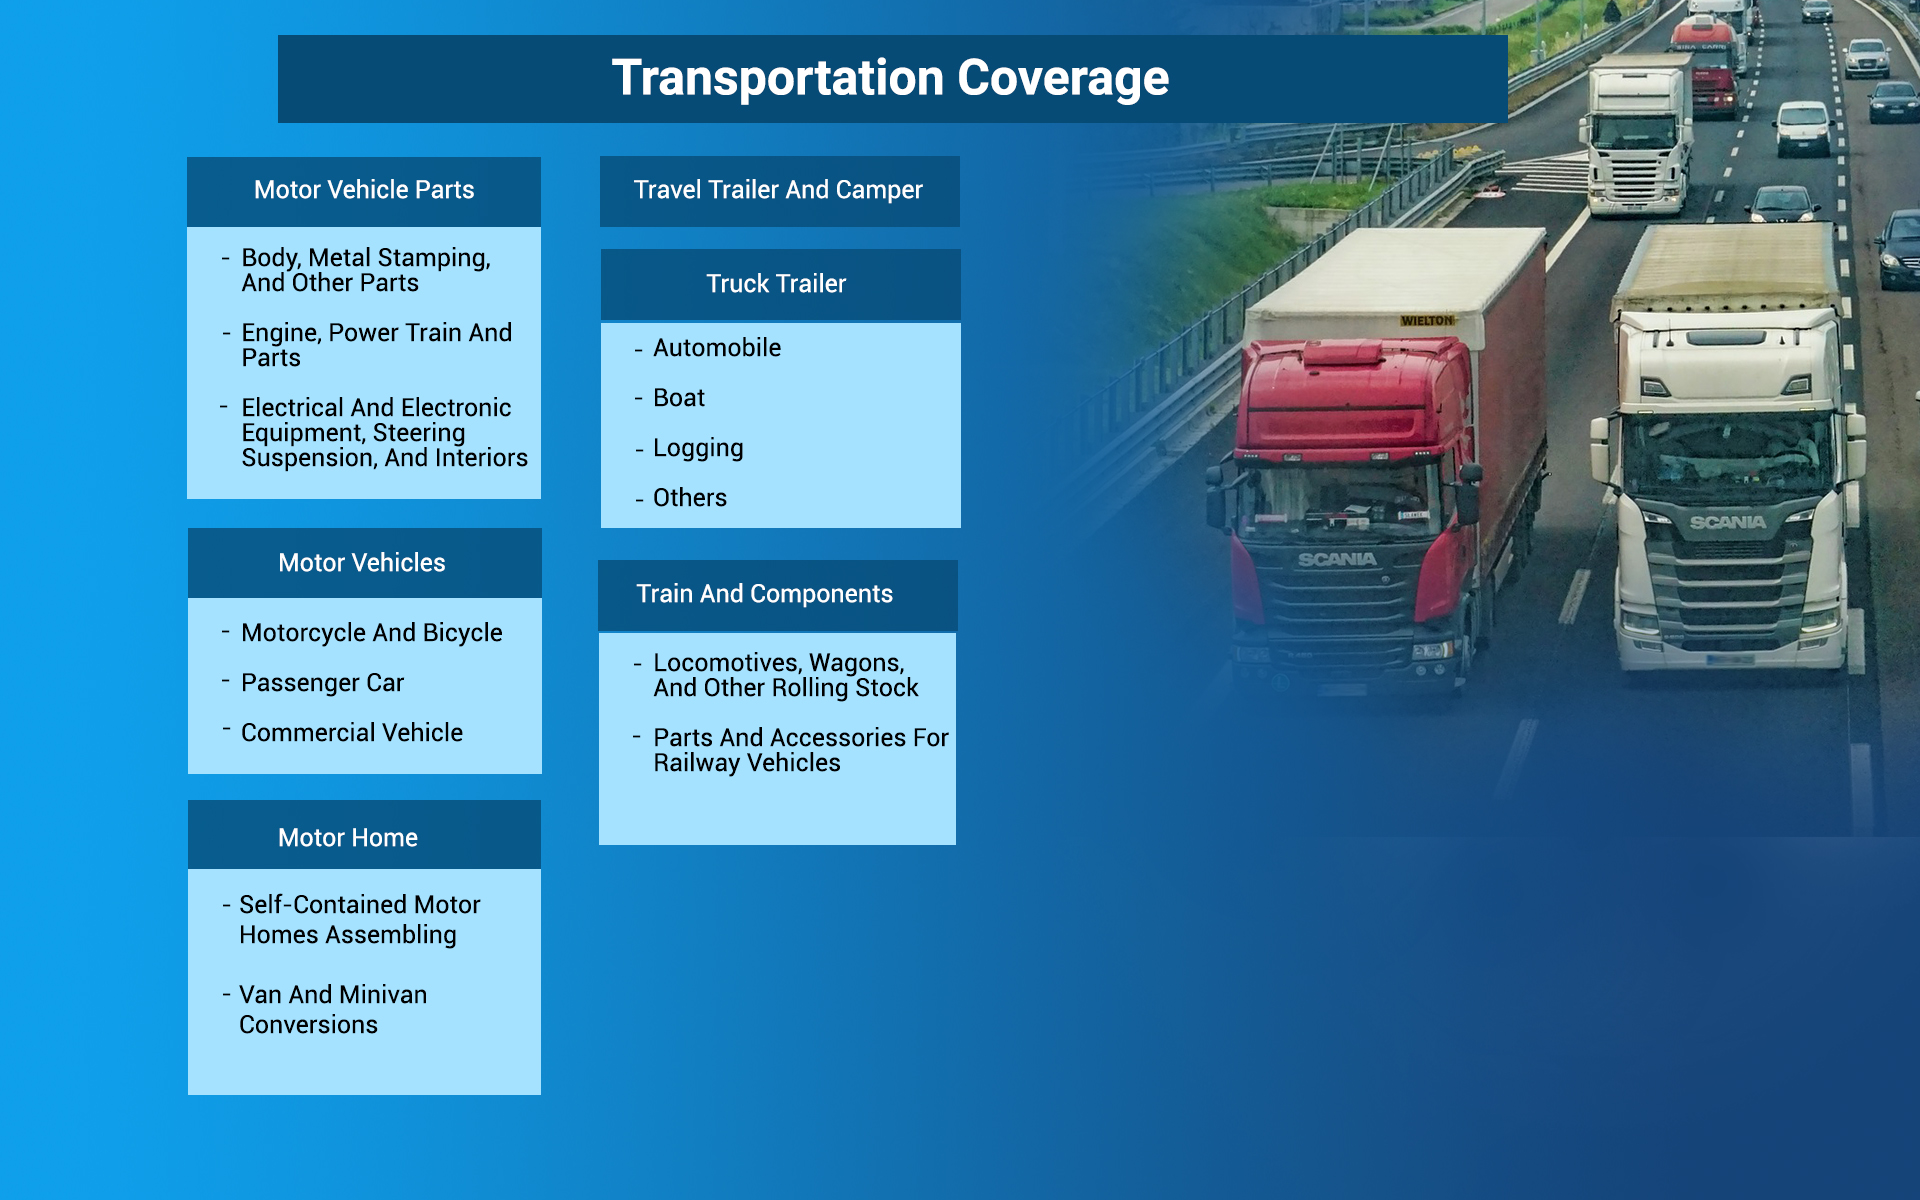 Transport Coverage